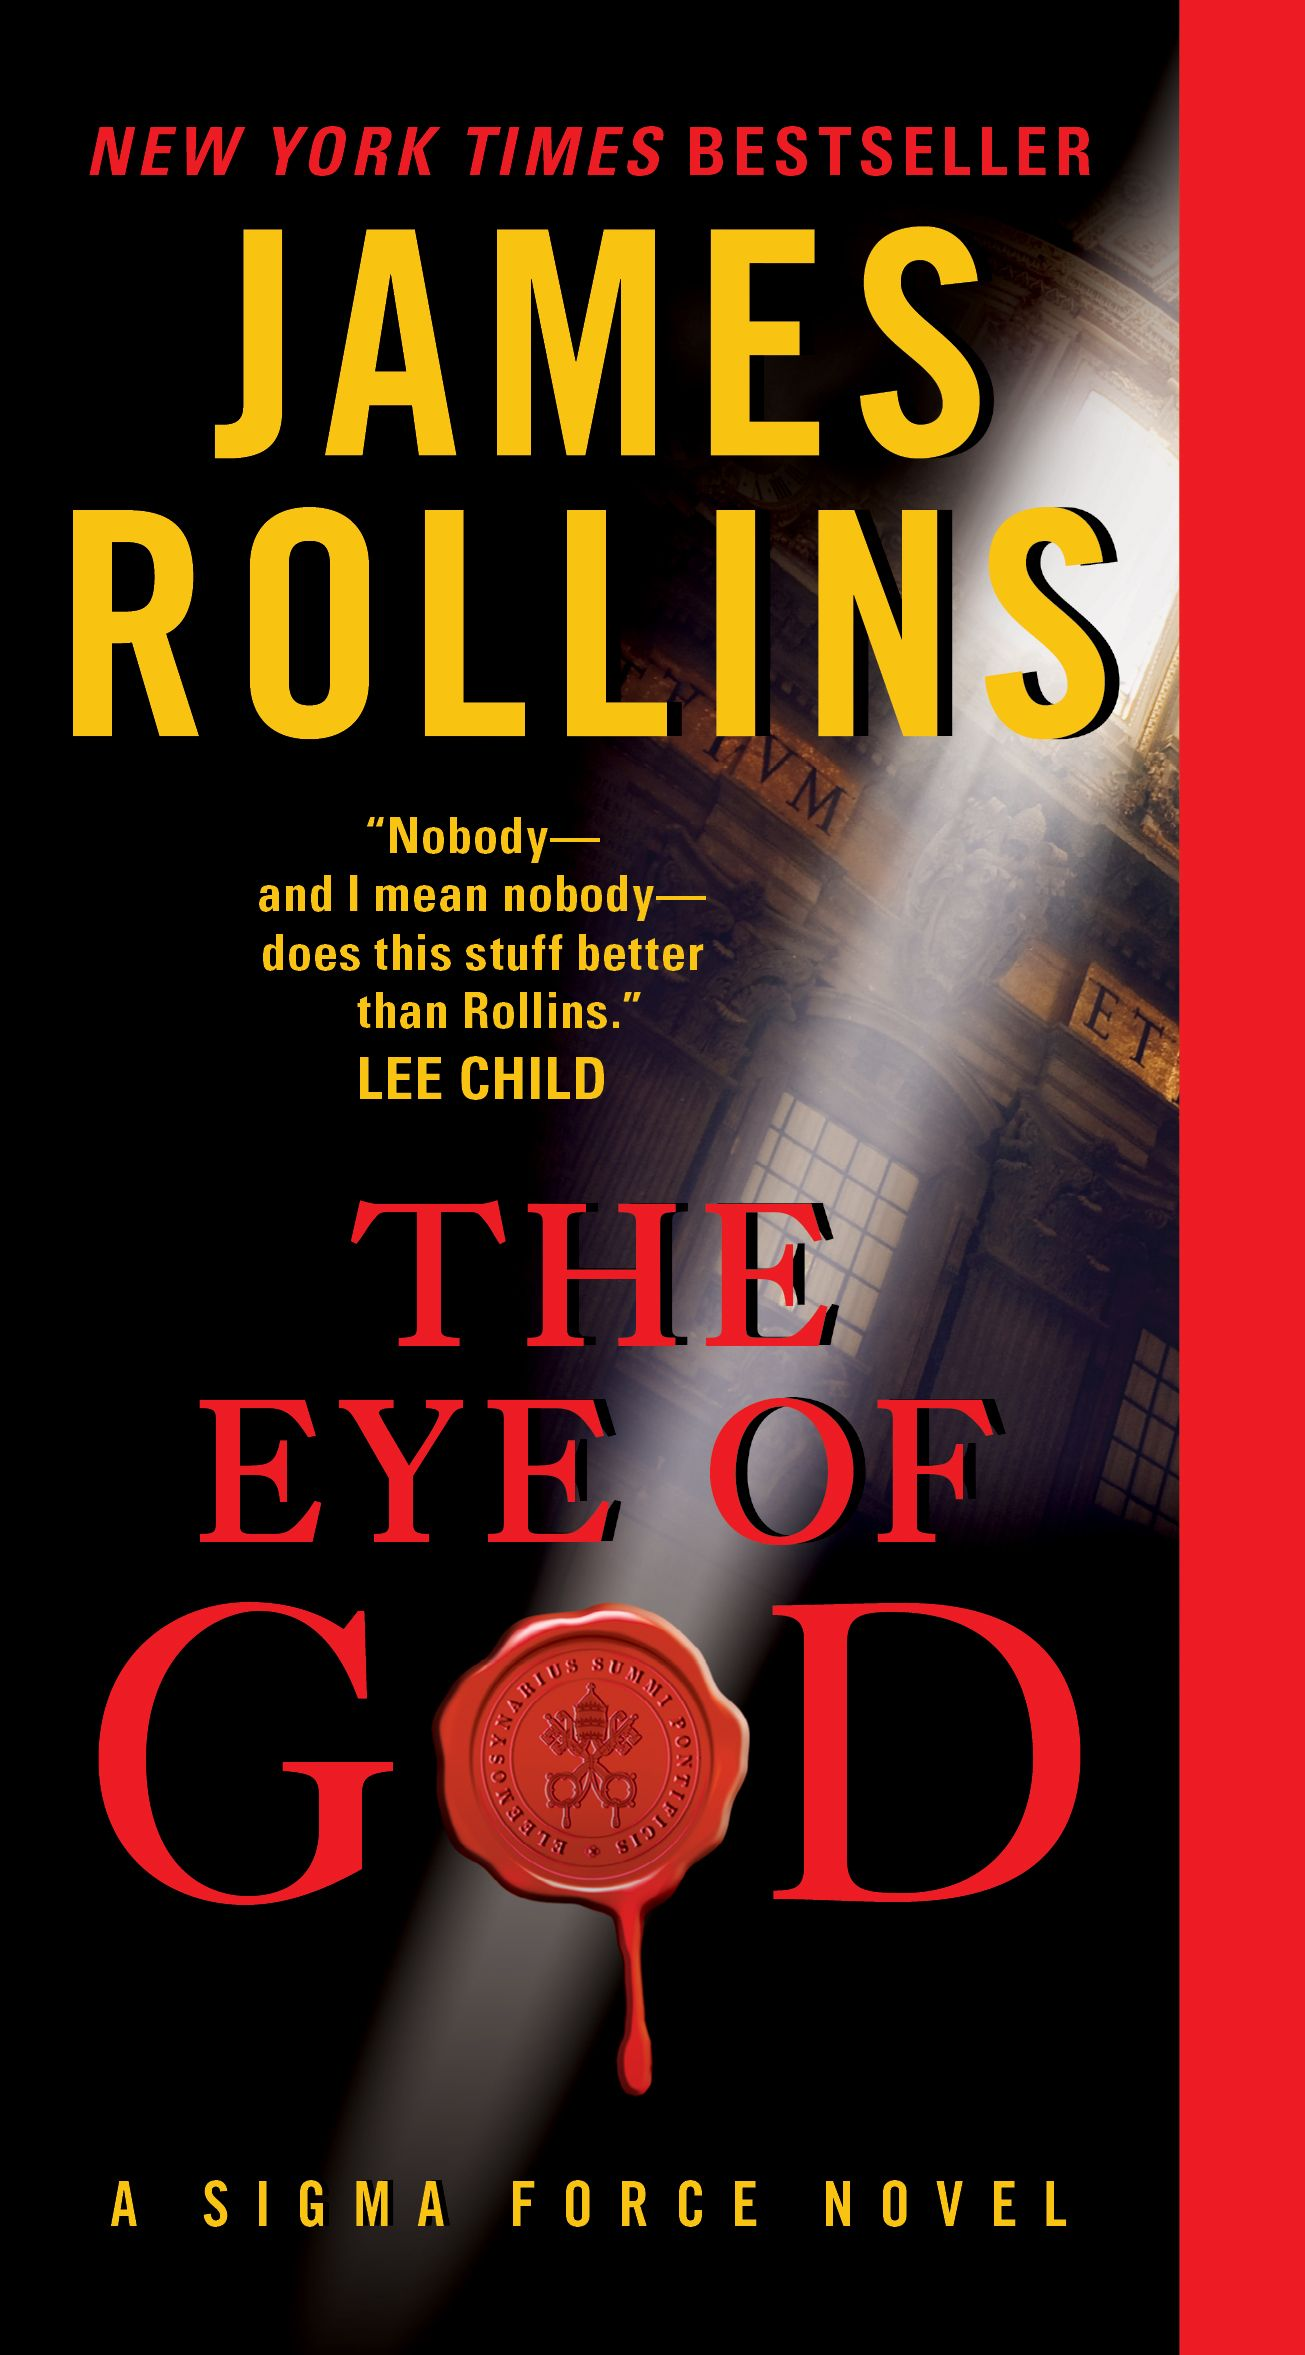 The Eye of God: A Sigma Force Novel (Paperback). Read the story description  here: